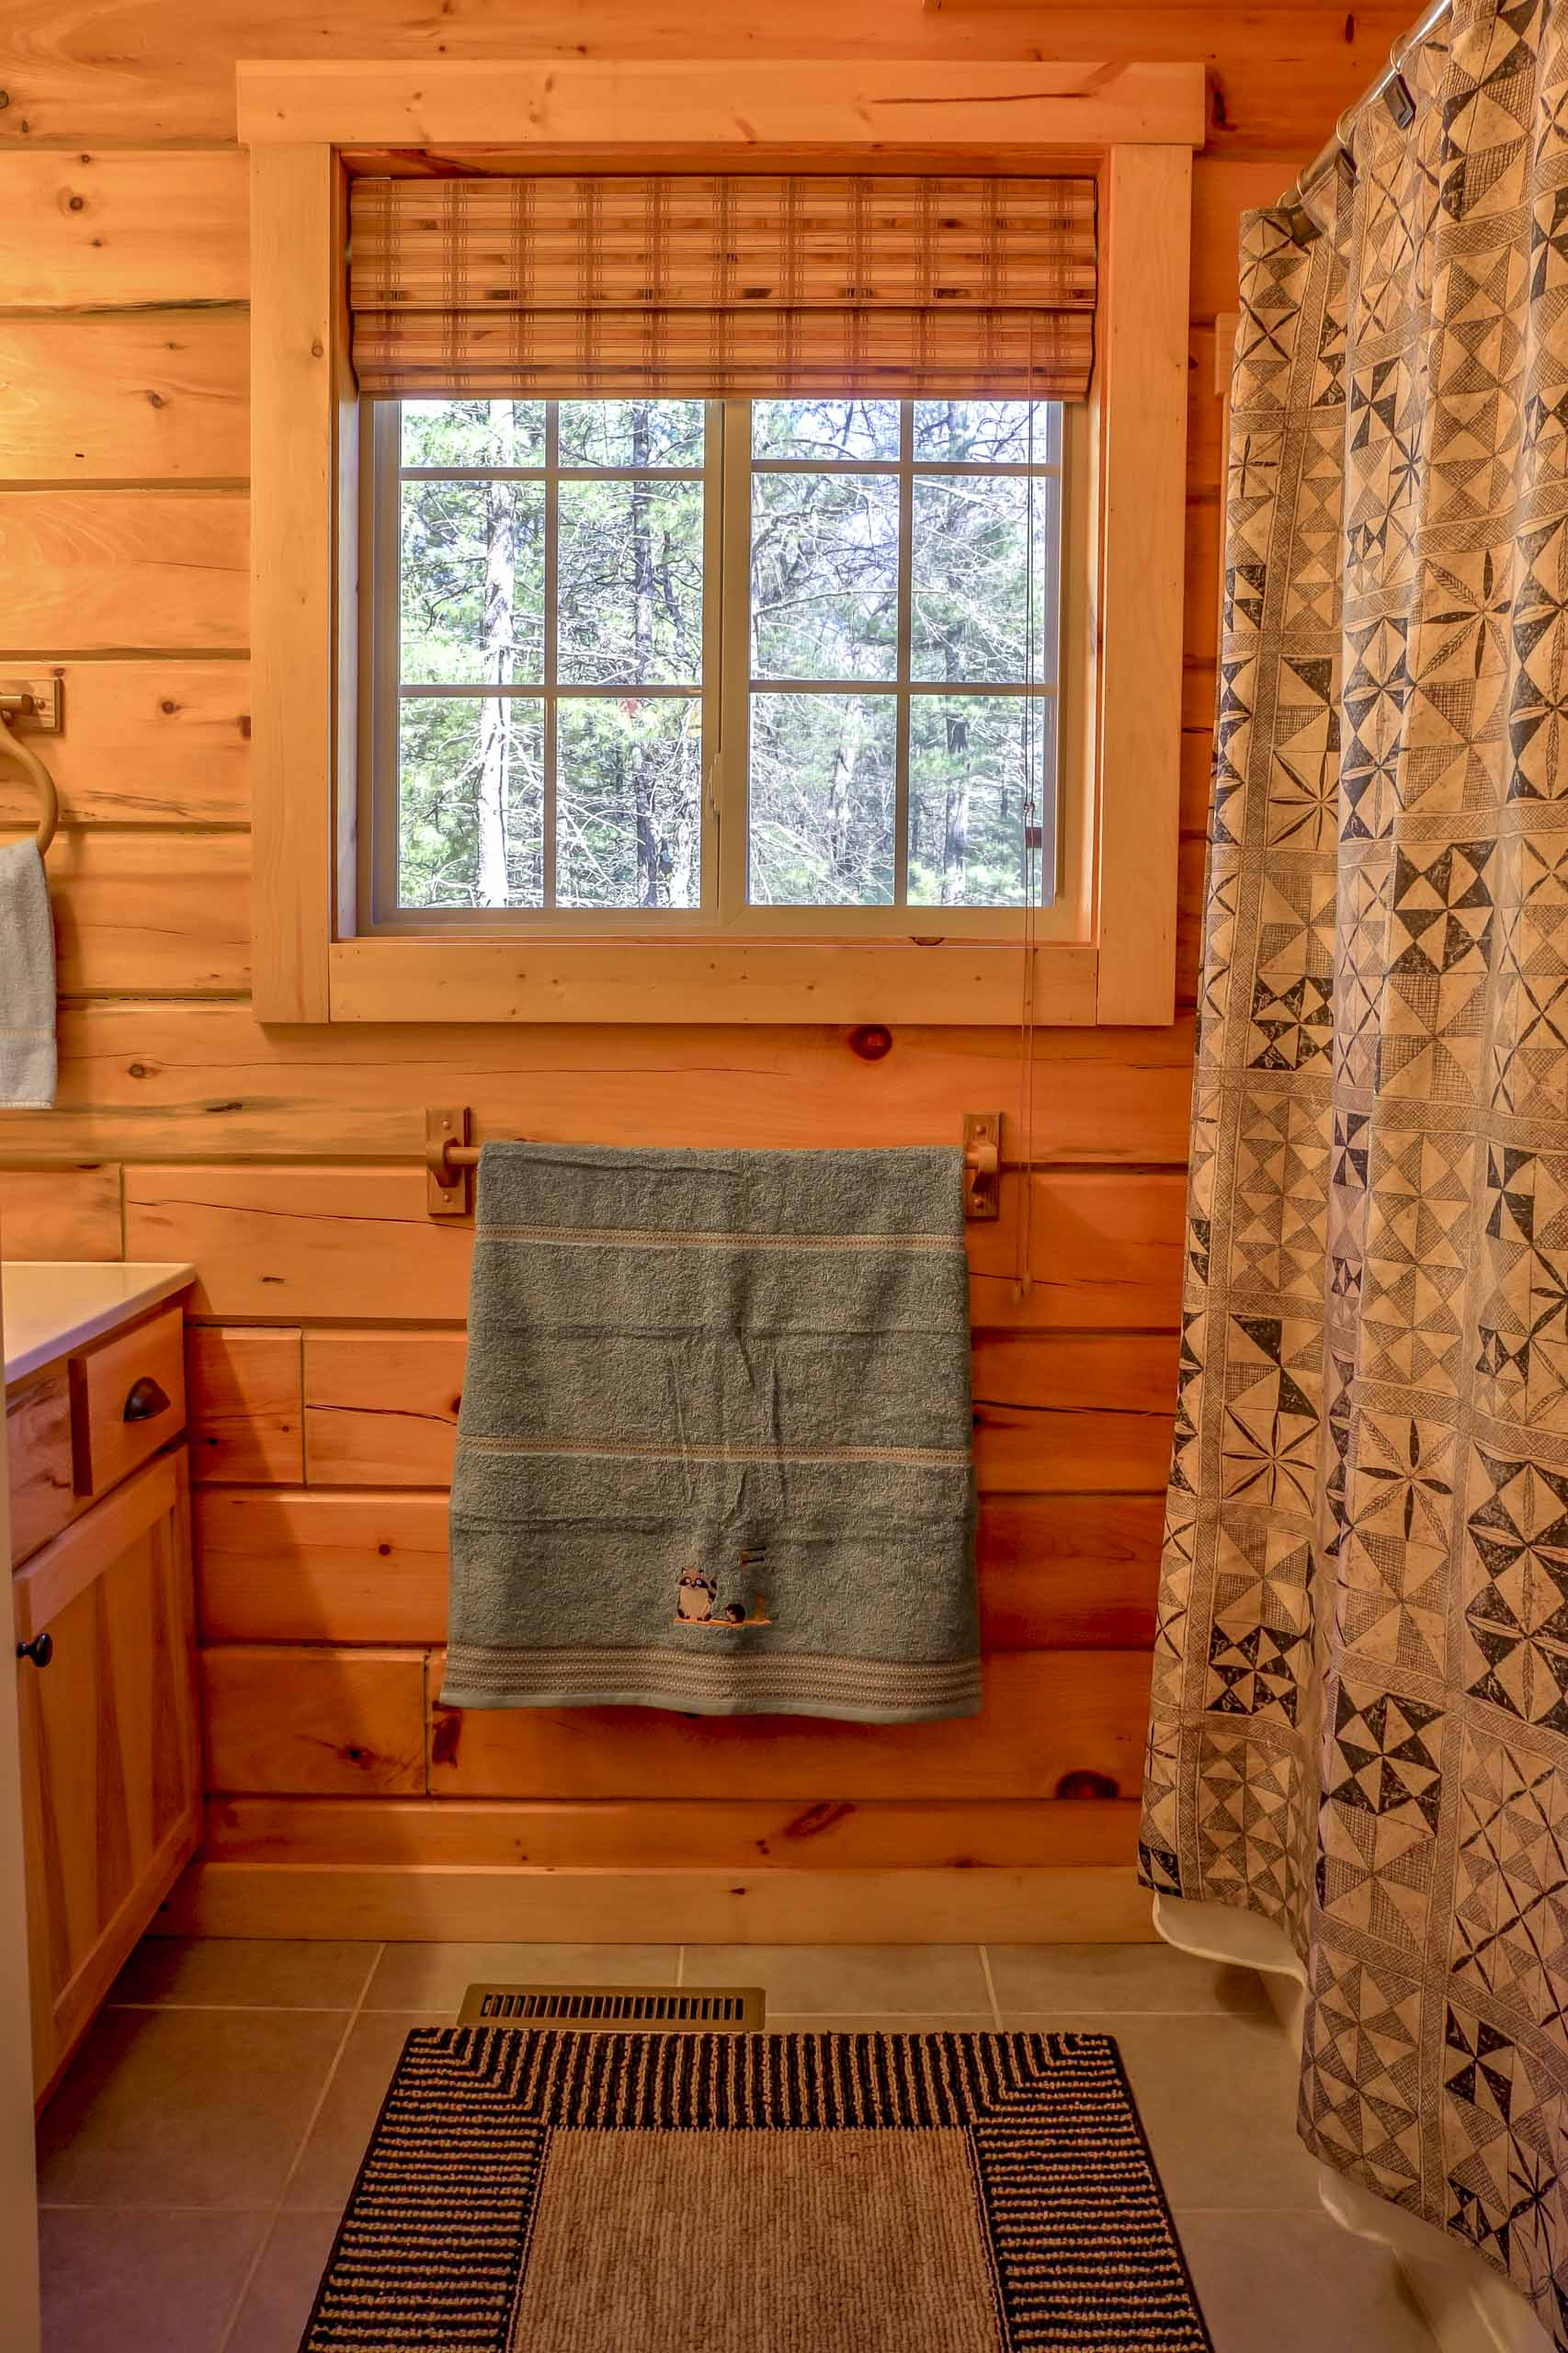 The home features 1.5 bathrooms for guests to use.